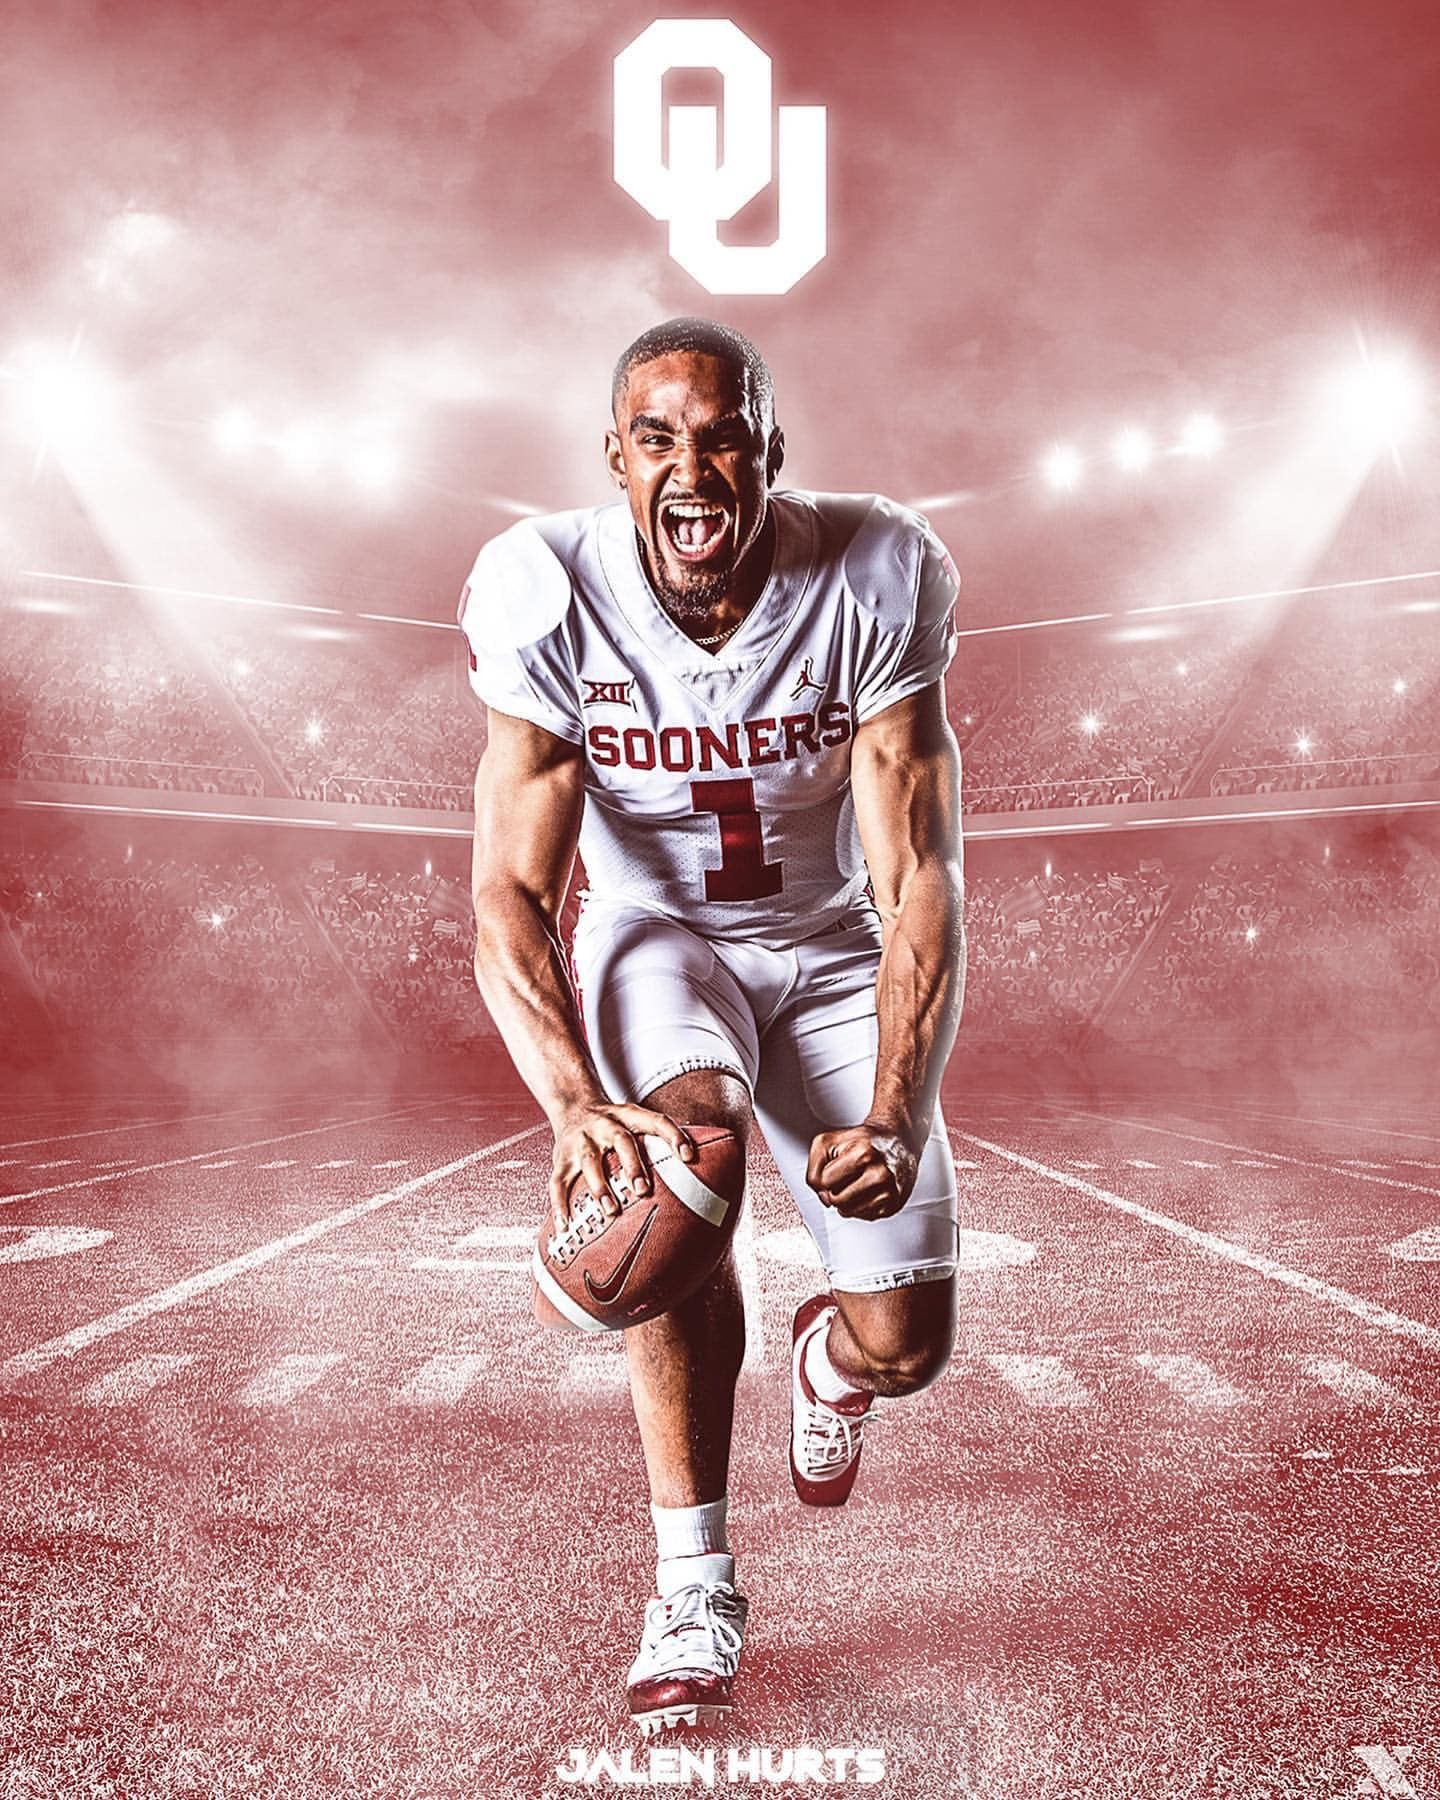 Pin By Juan Agnew On Ou In 2020 Oklahoma Sooners Football Sooners Jalen Hurts